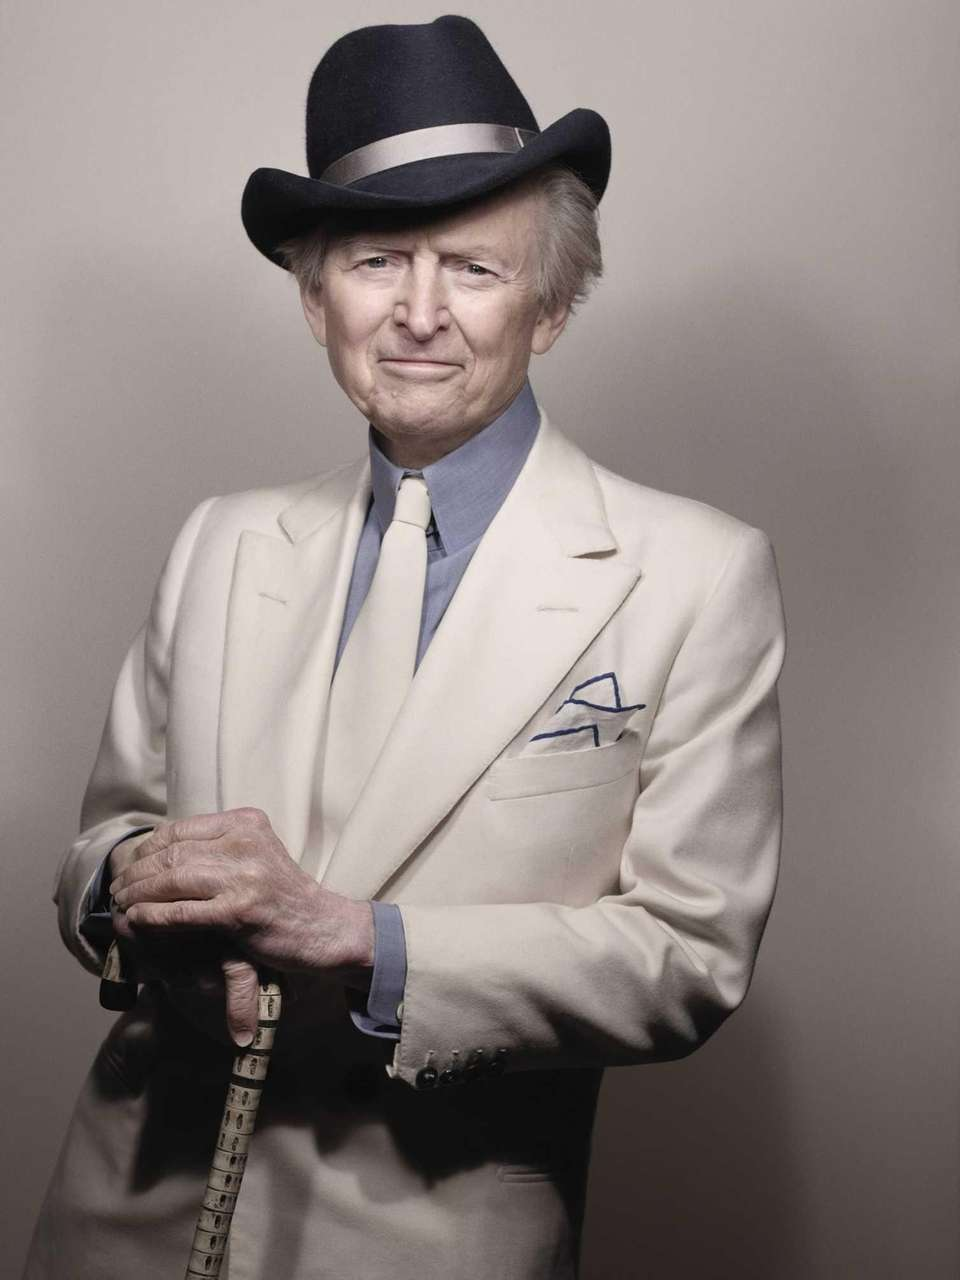 Tom Wolfe, author of